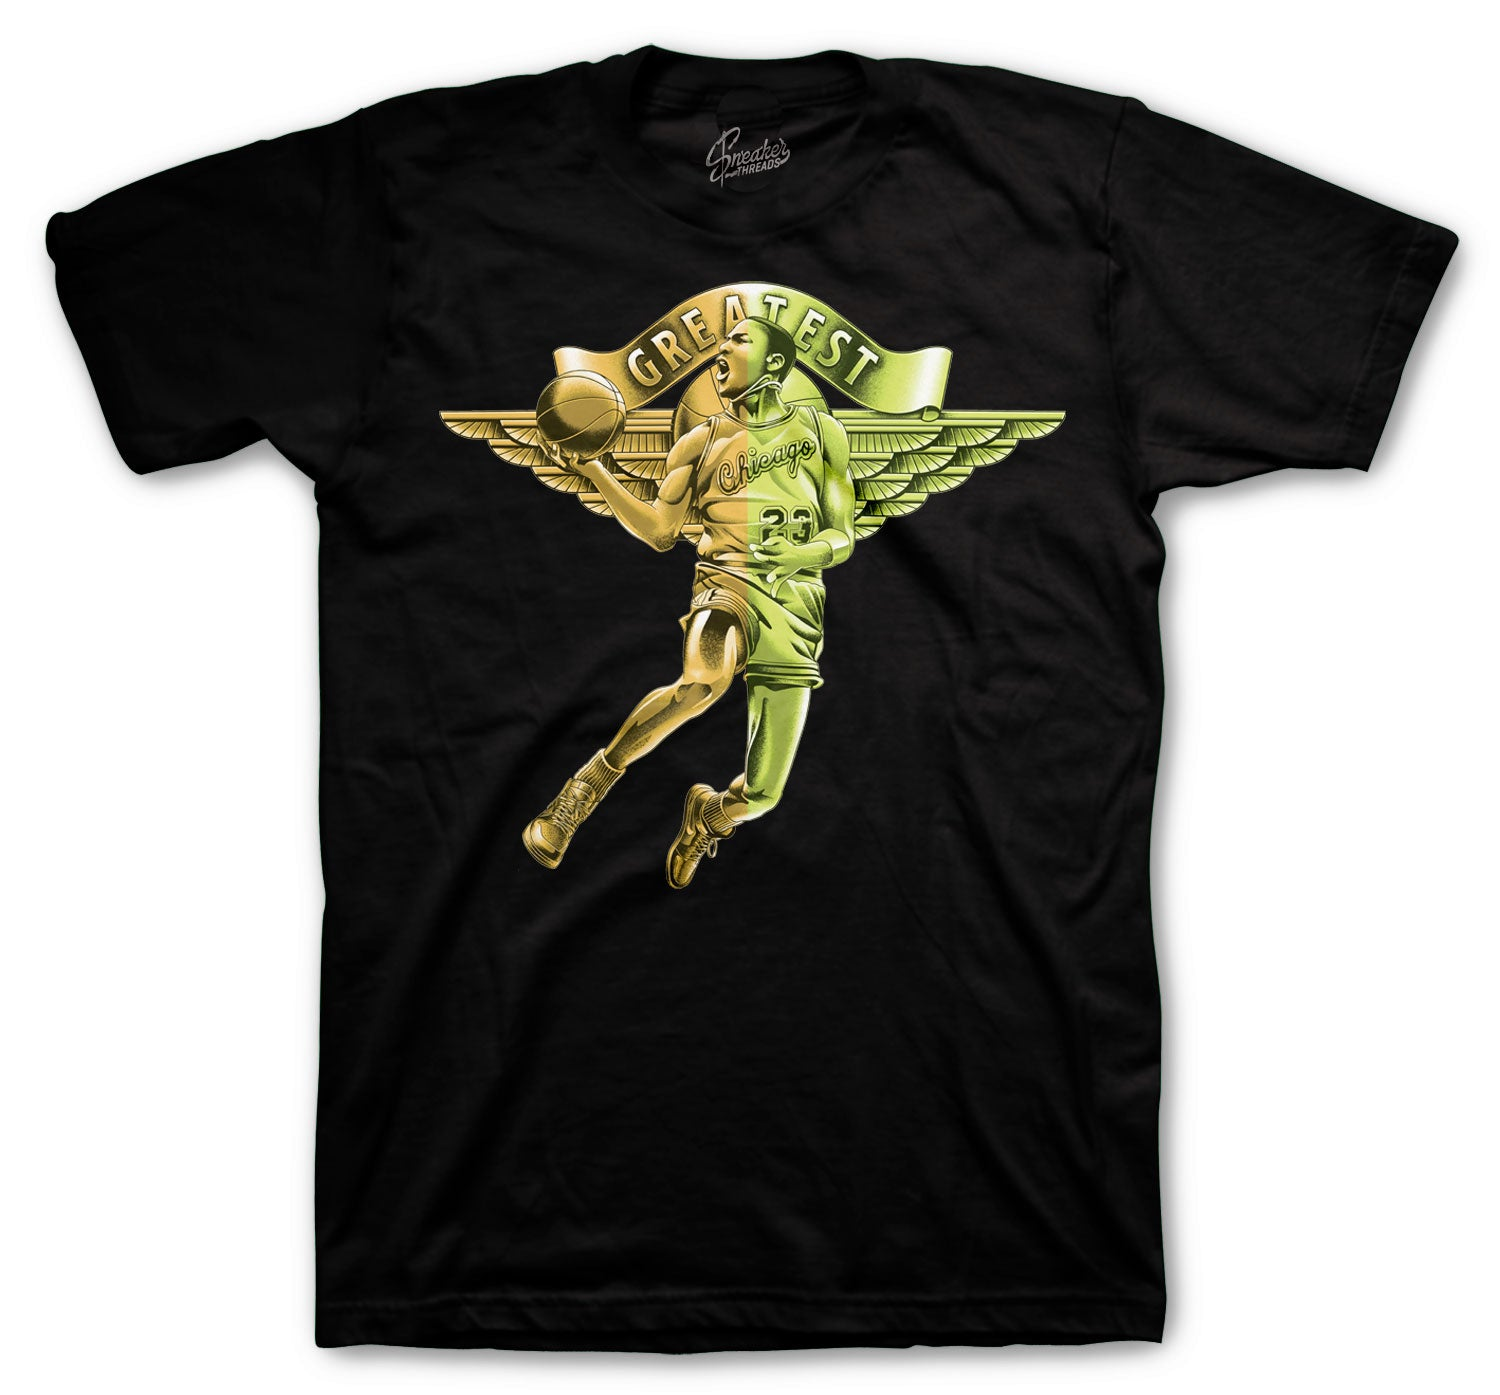 Shirts for men designed to match the Jordan 1 volt gold sneaker collection